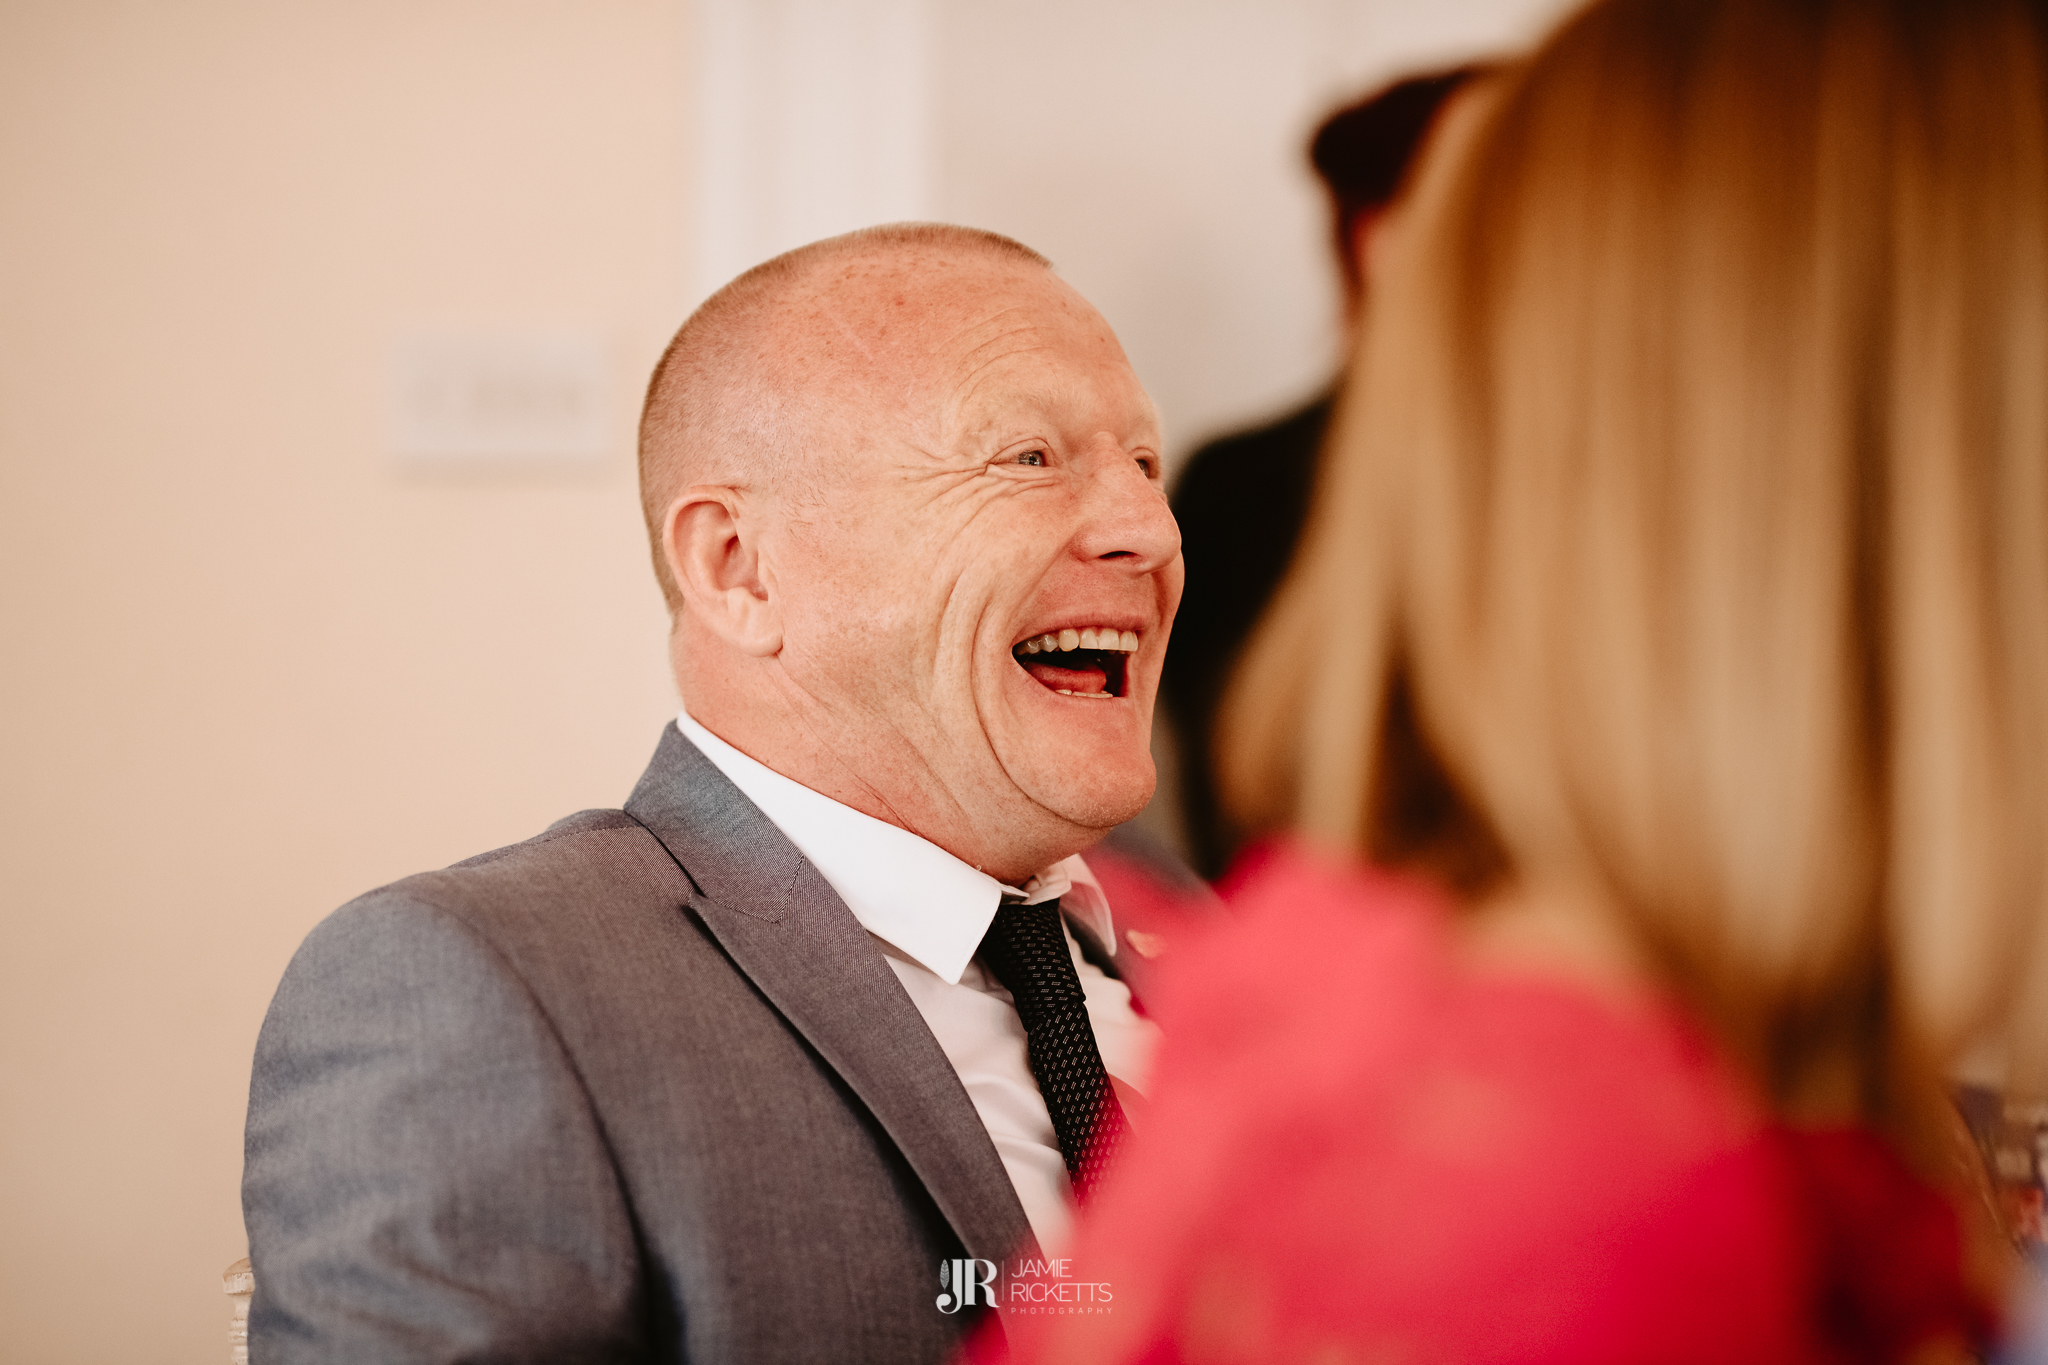 Wroxeter-Hotel-Wedding-Photography-In-Shropshire-By-Shropshire-Wedding-Photographer-Jamie-Ricketts-165.JPG